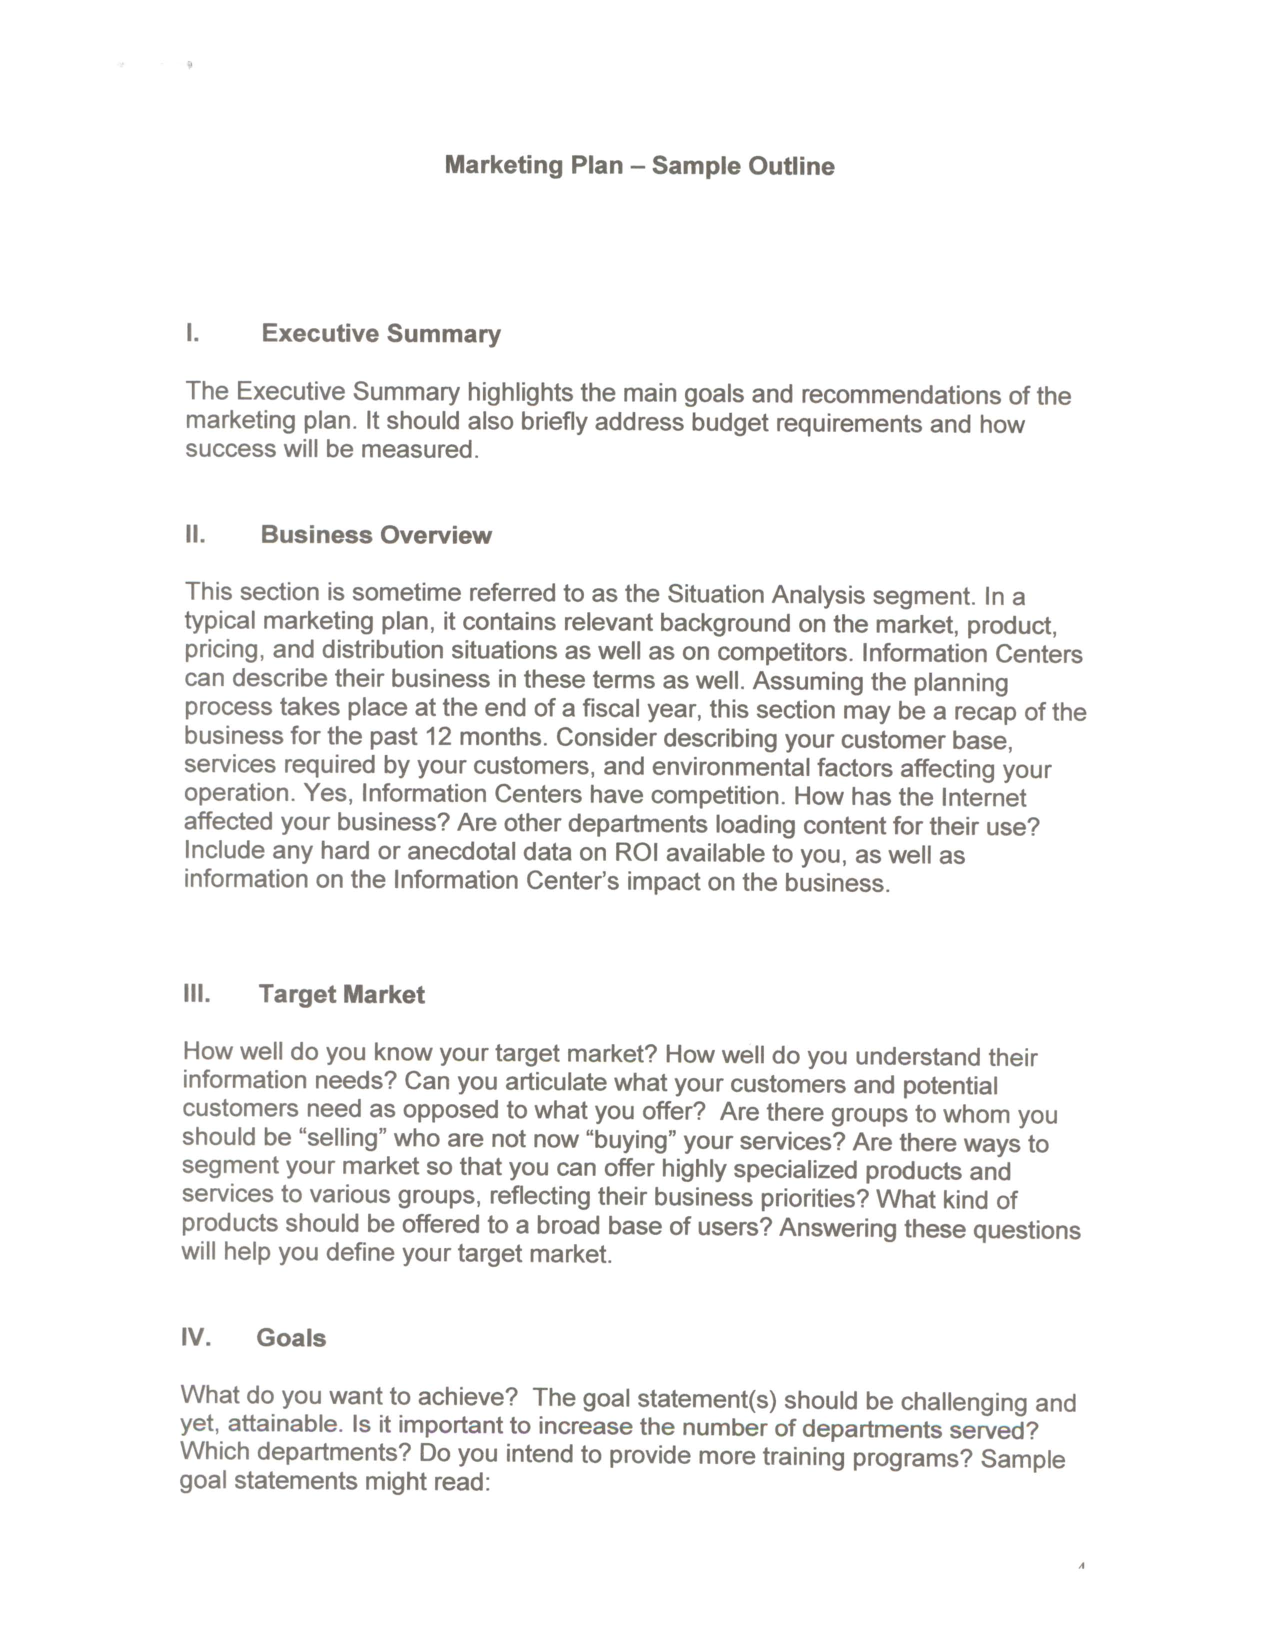 Examples Of An Executive Summary  Marketing Plan  Sample Outline